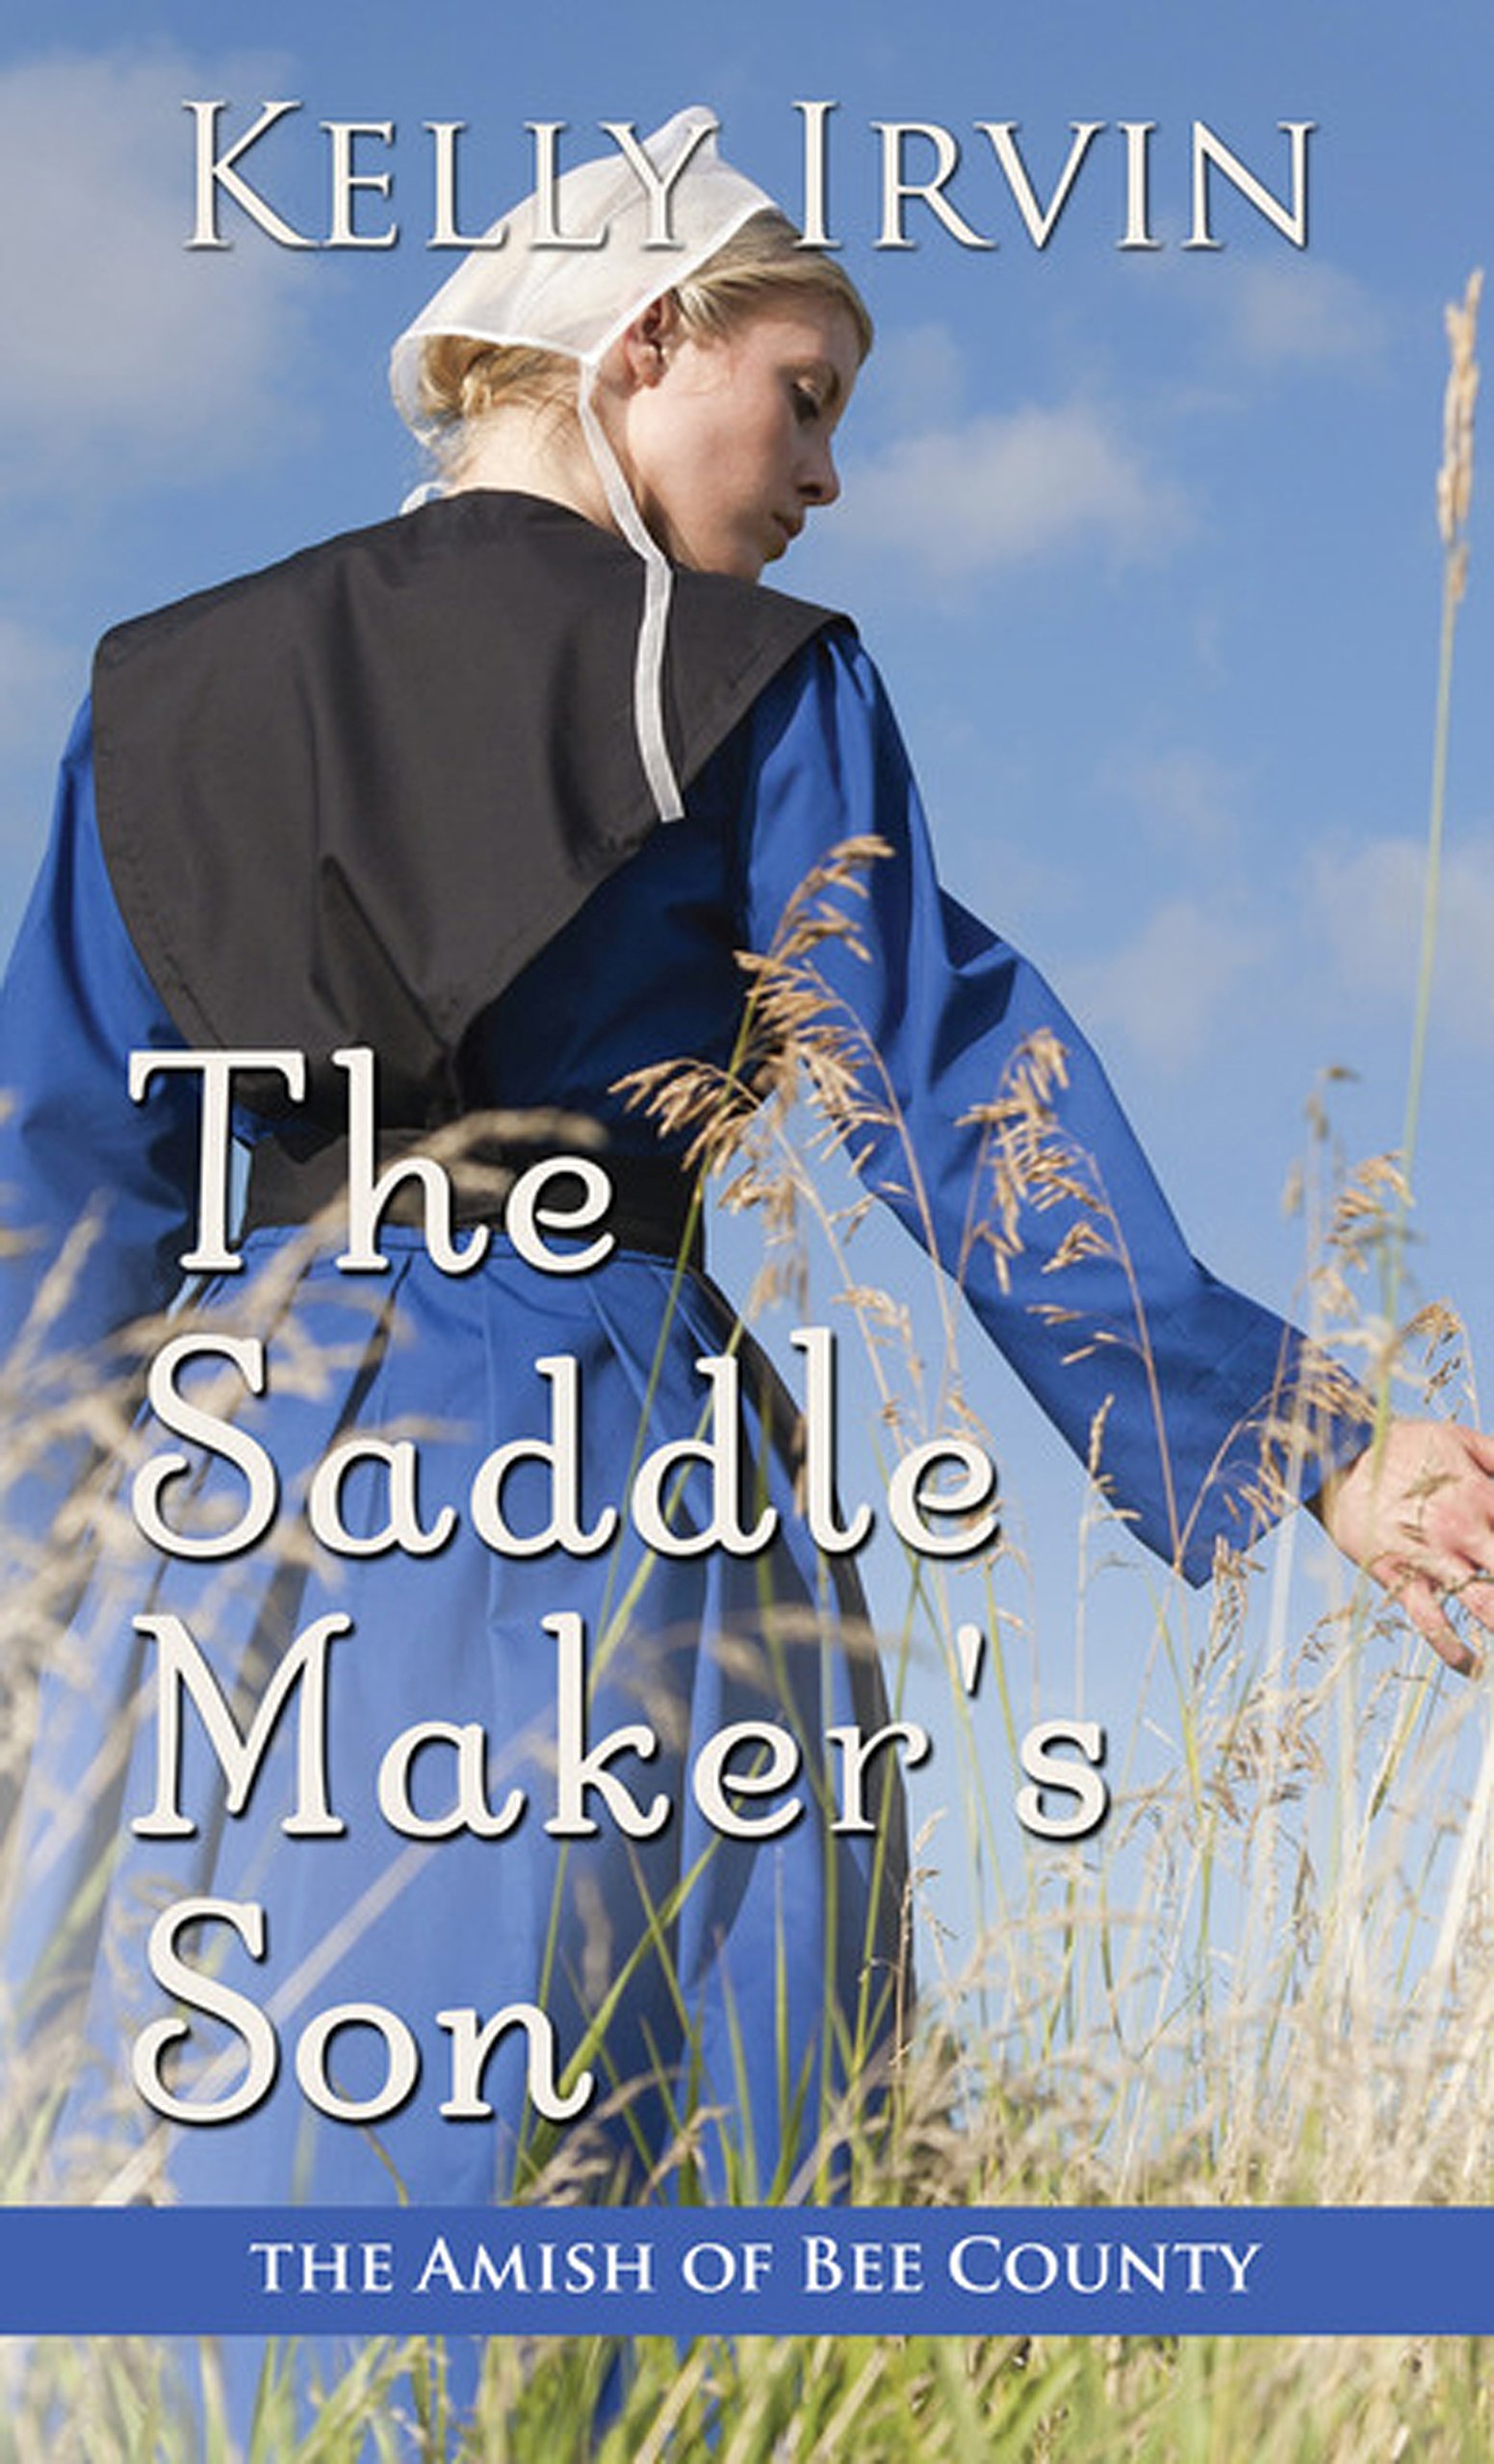 The Saddle Makers Son (Amish of Bee County): Amazon.co.uk: Kelly Irvin:  9781410491060: Books